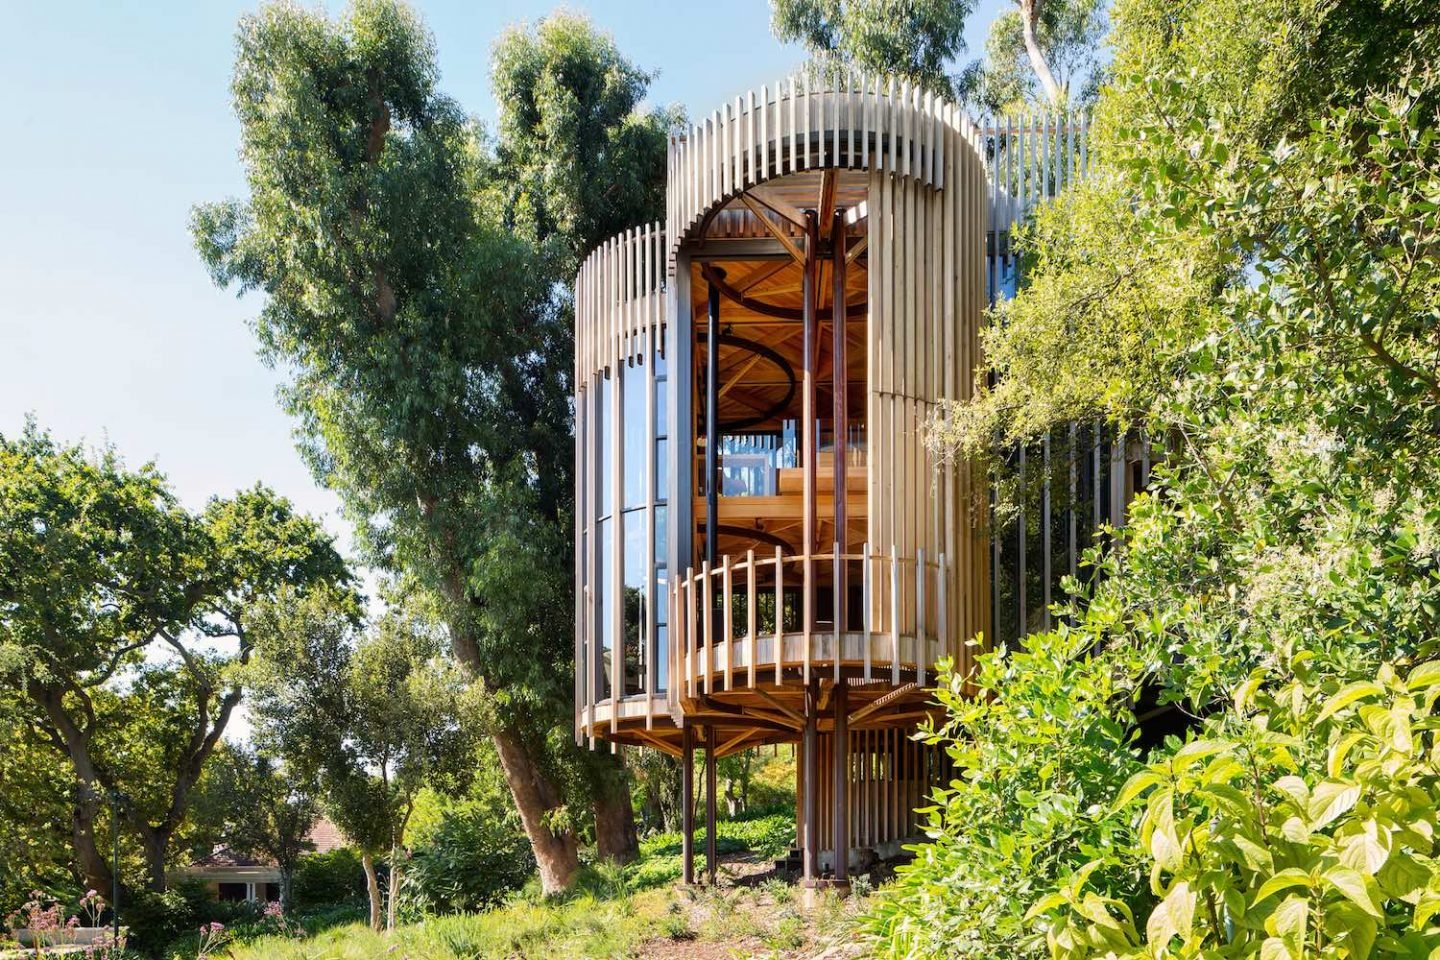 paarman-tree-house-by-mv-architecture-residential_dezeen_2364_col_10